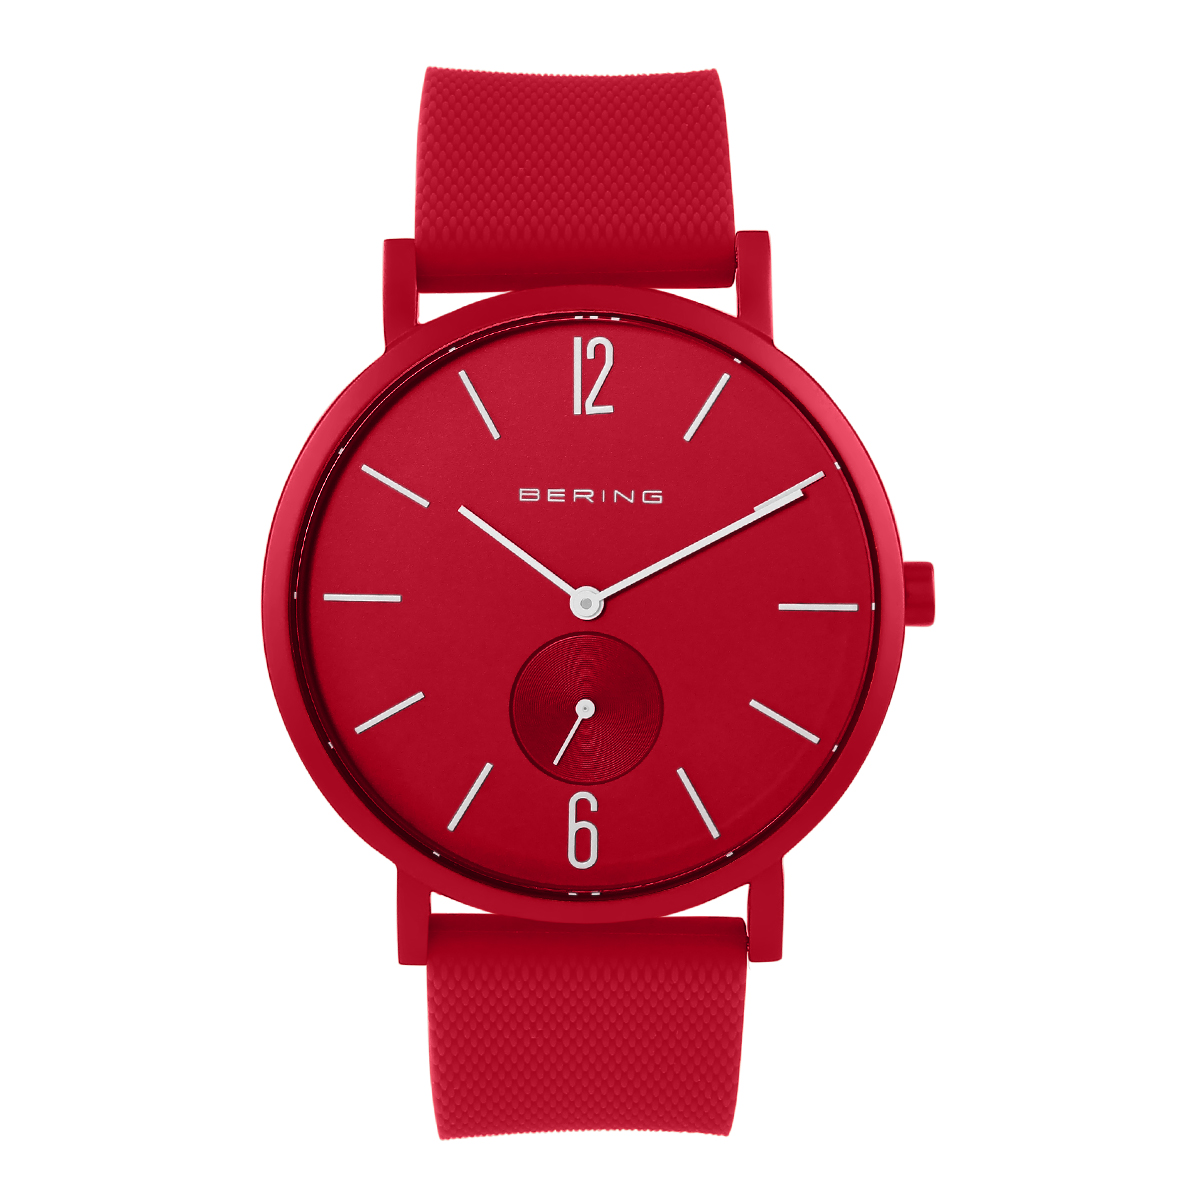 Bering Red Analogue Men's Watch – 16940-599